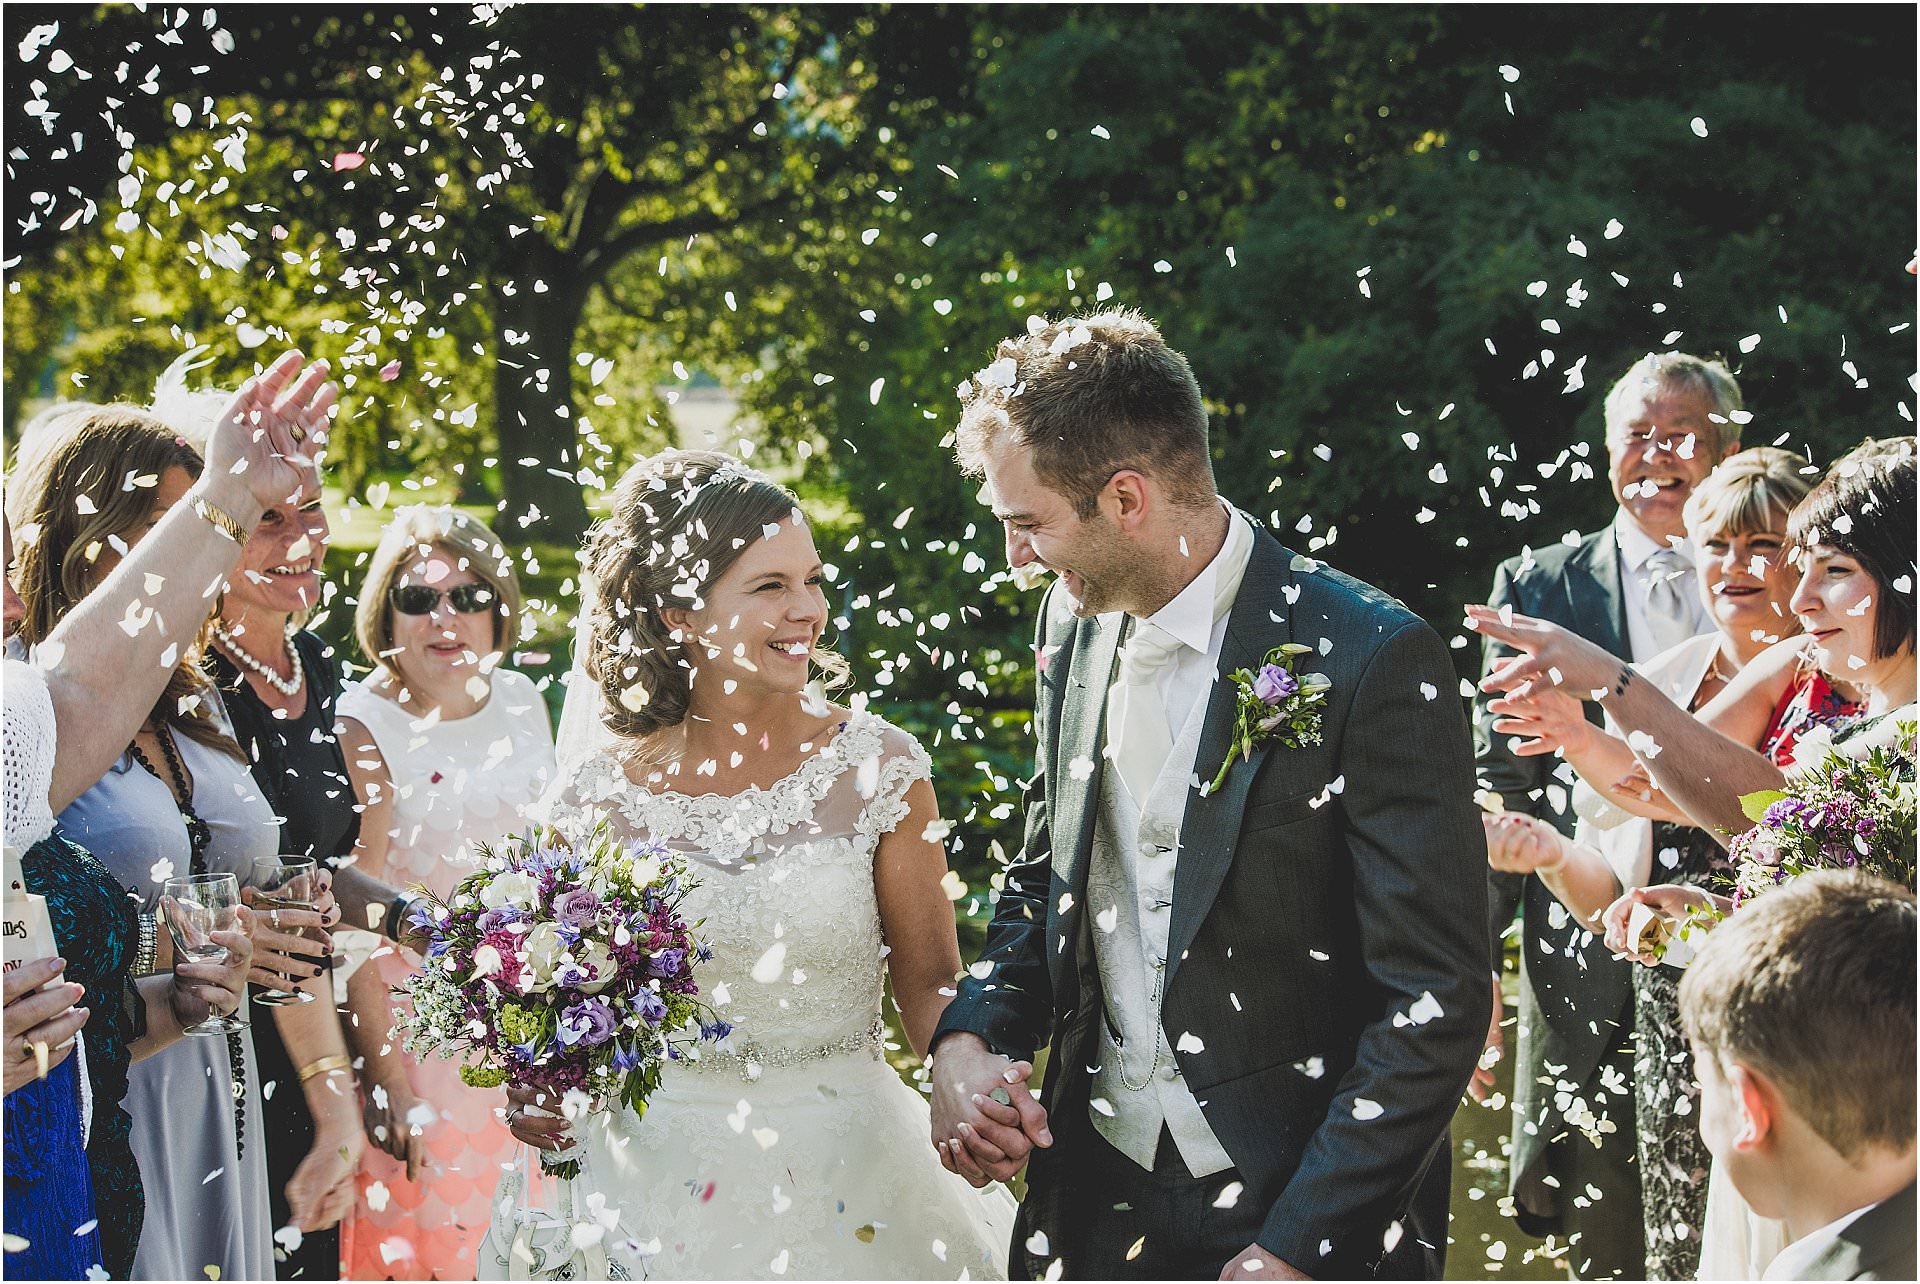 how to photograph beautiful confetti wedding photos